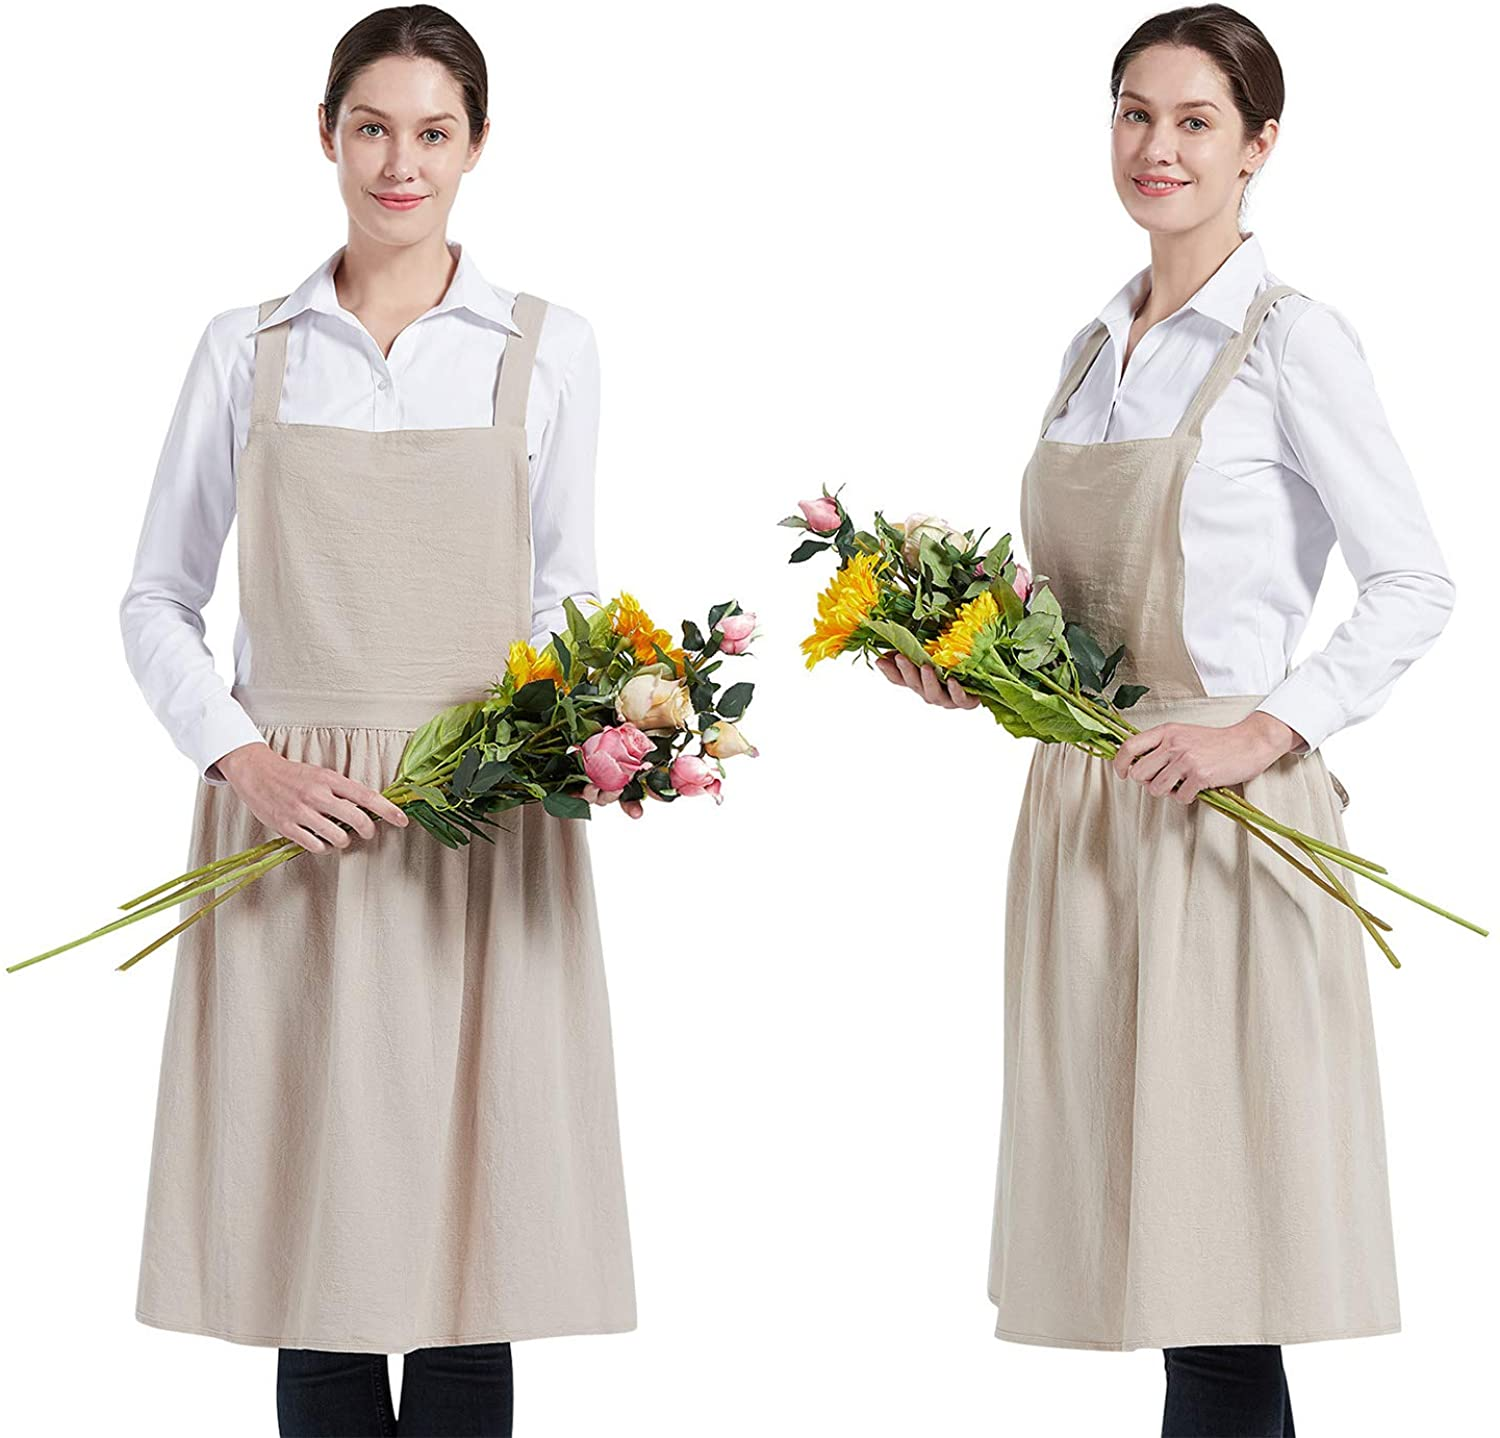 Cottagecore Dresses Aesthetic, Granny, Vintage Nanxson Women Cotton Linen Bib Apron Cross Back Work Apron for CookingBakingCraftingFlower Arrangement CF3046 $17.98 AT vintagedancer.com